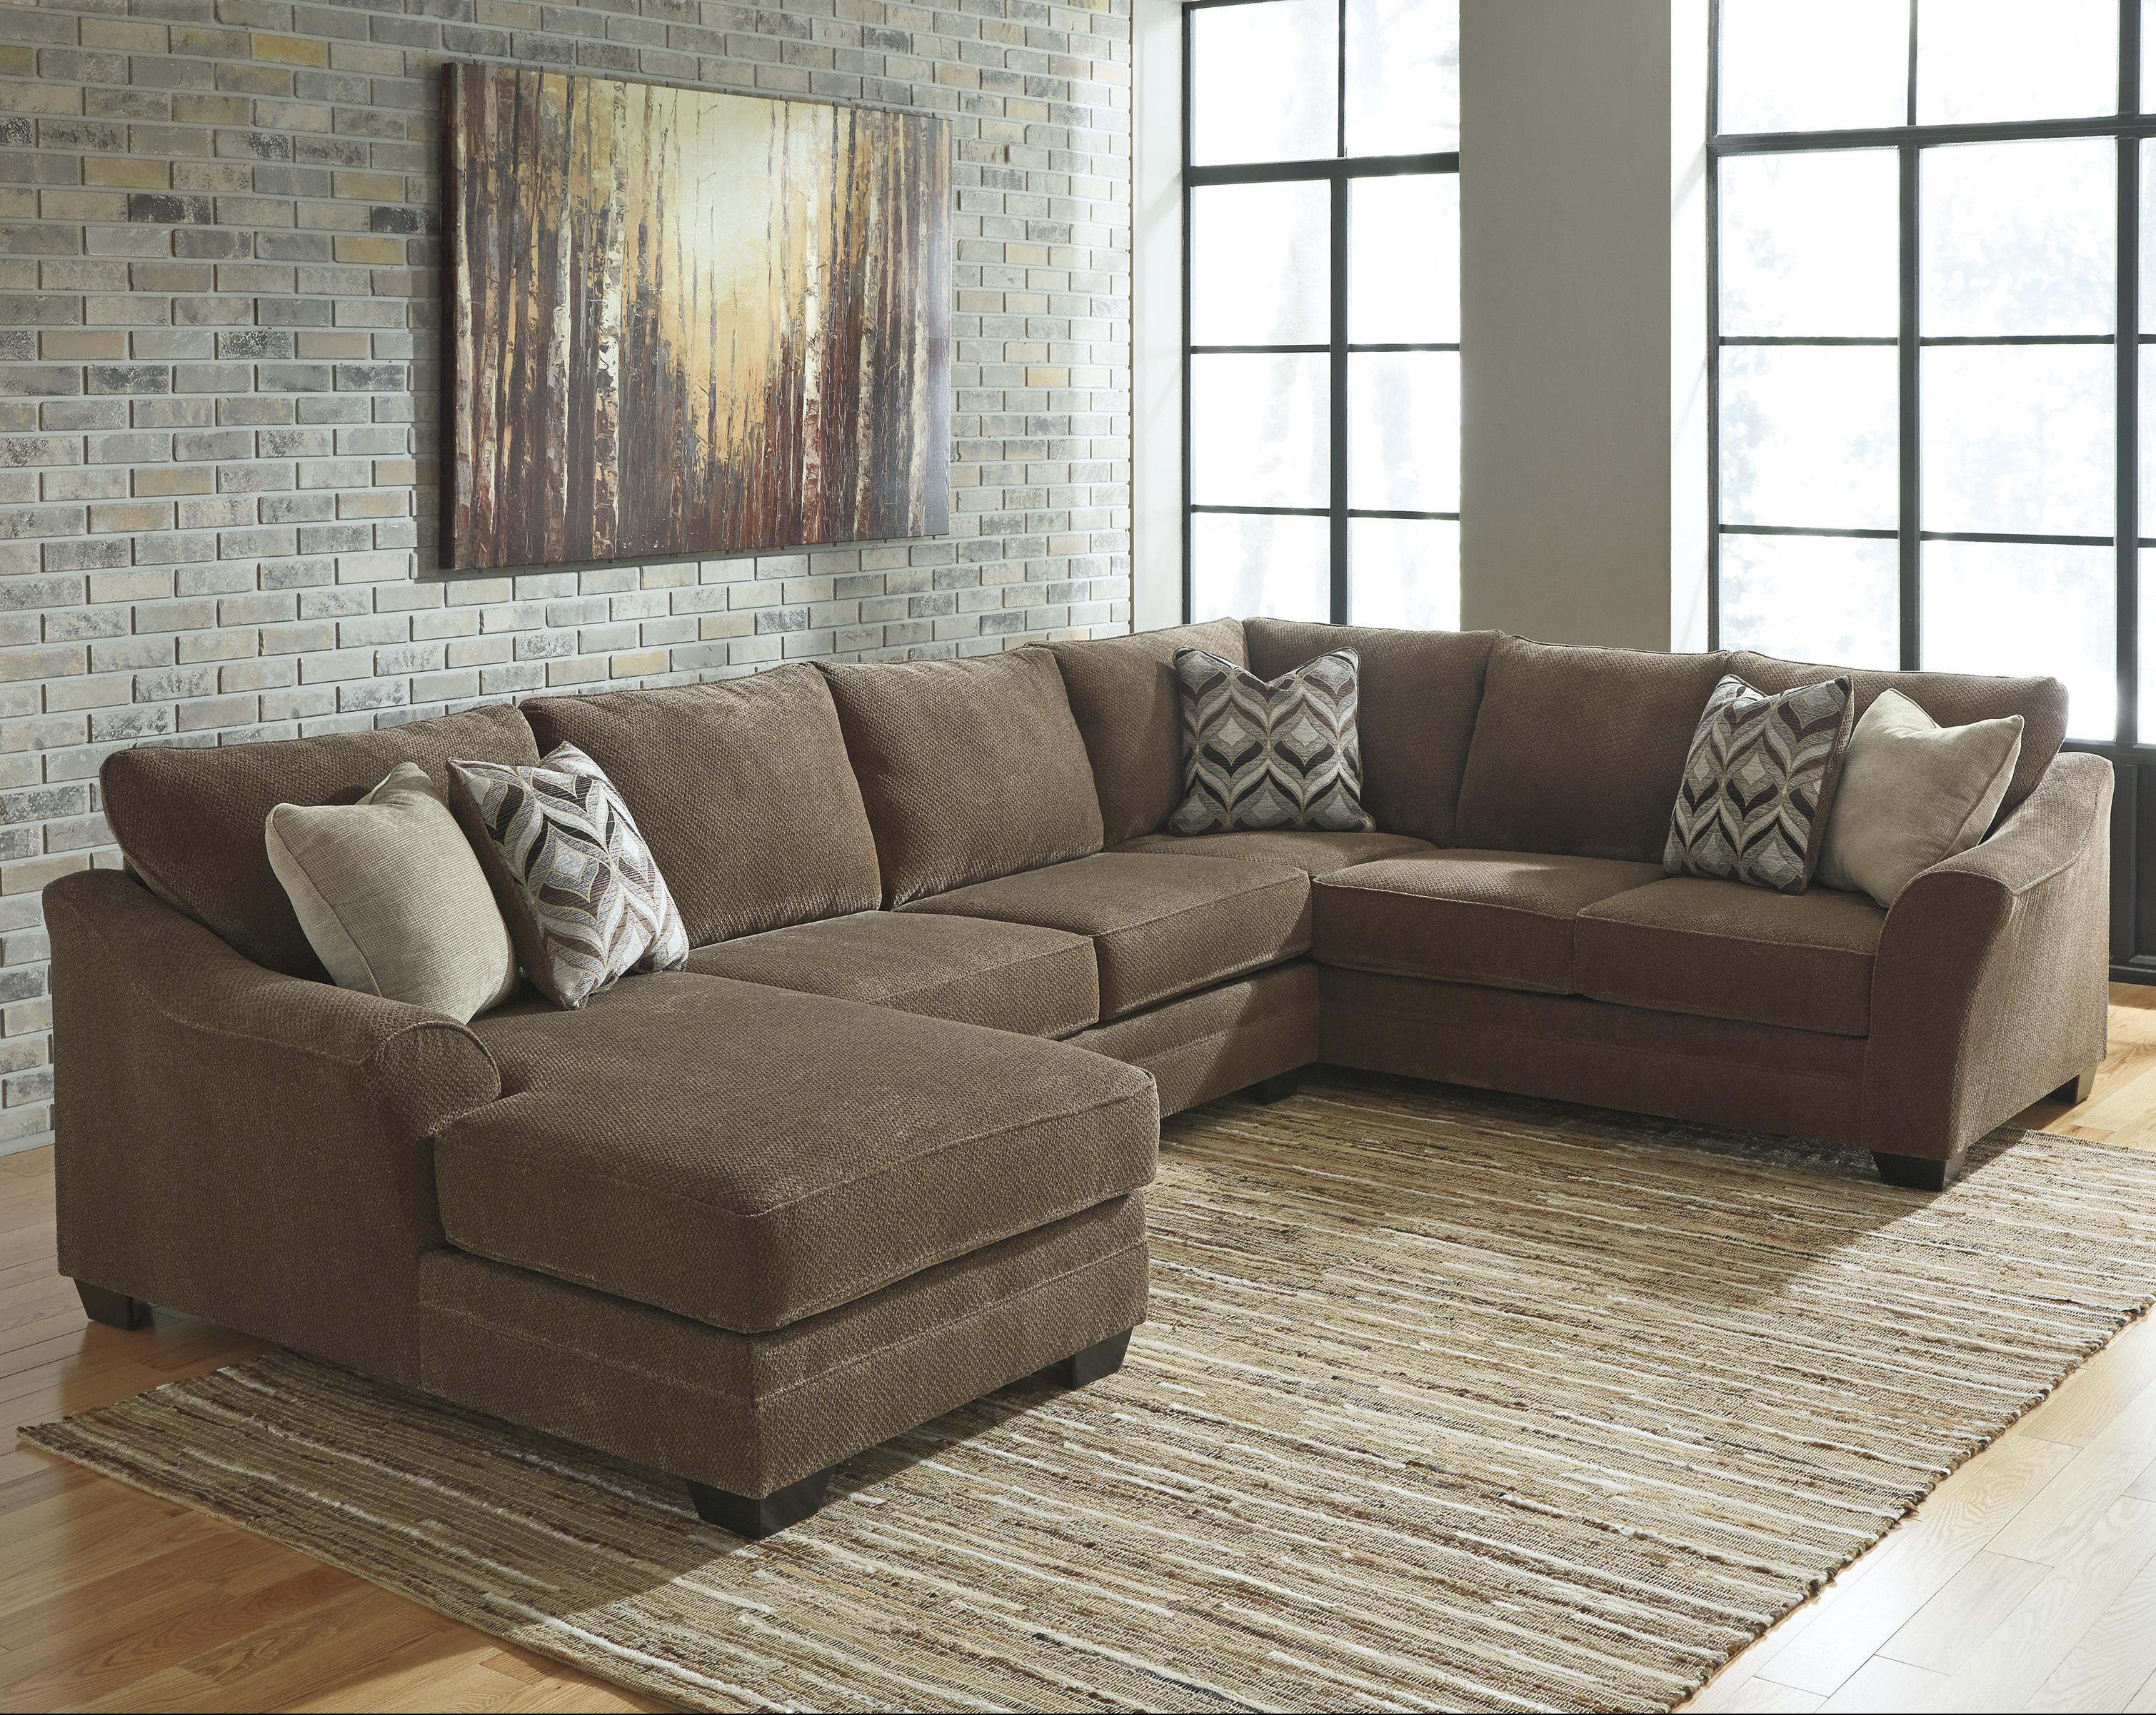 benchcraft justyna contemporary 3 piece sectional with left chaise dunk bright furniture. Black Bedroom Furniture Sets. Home Design Ideas